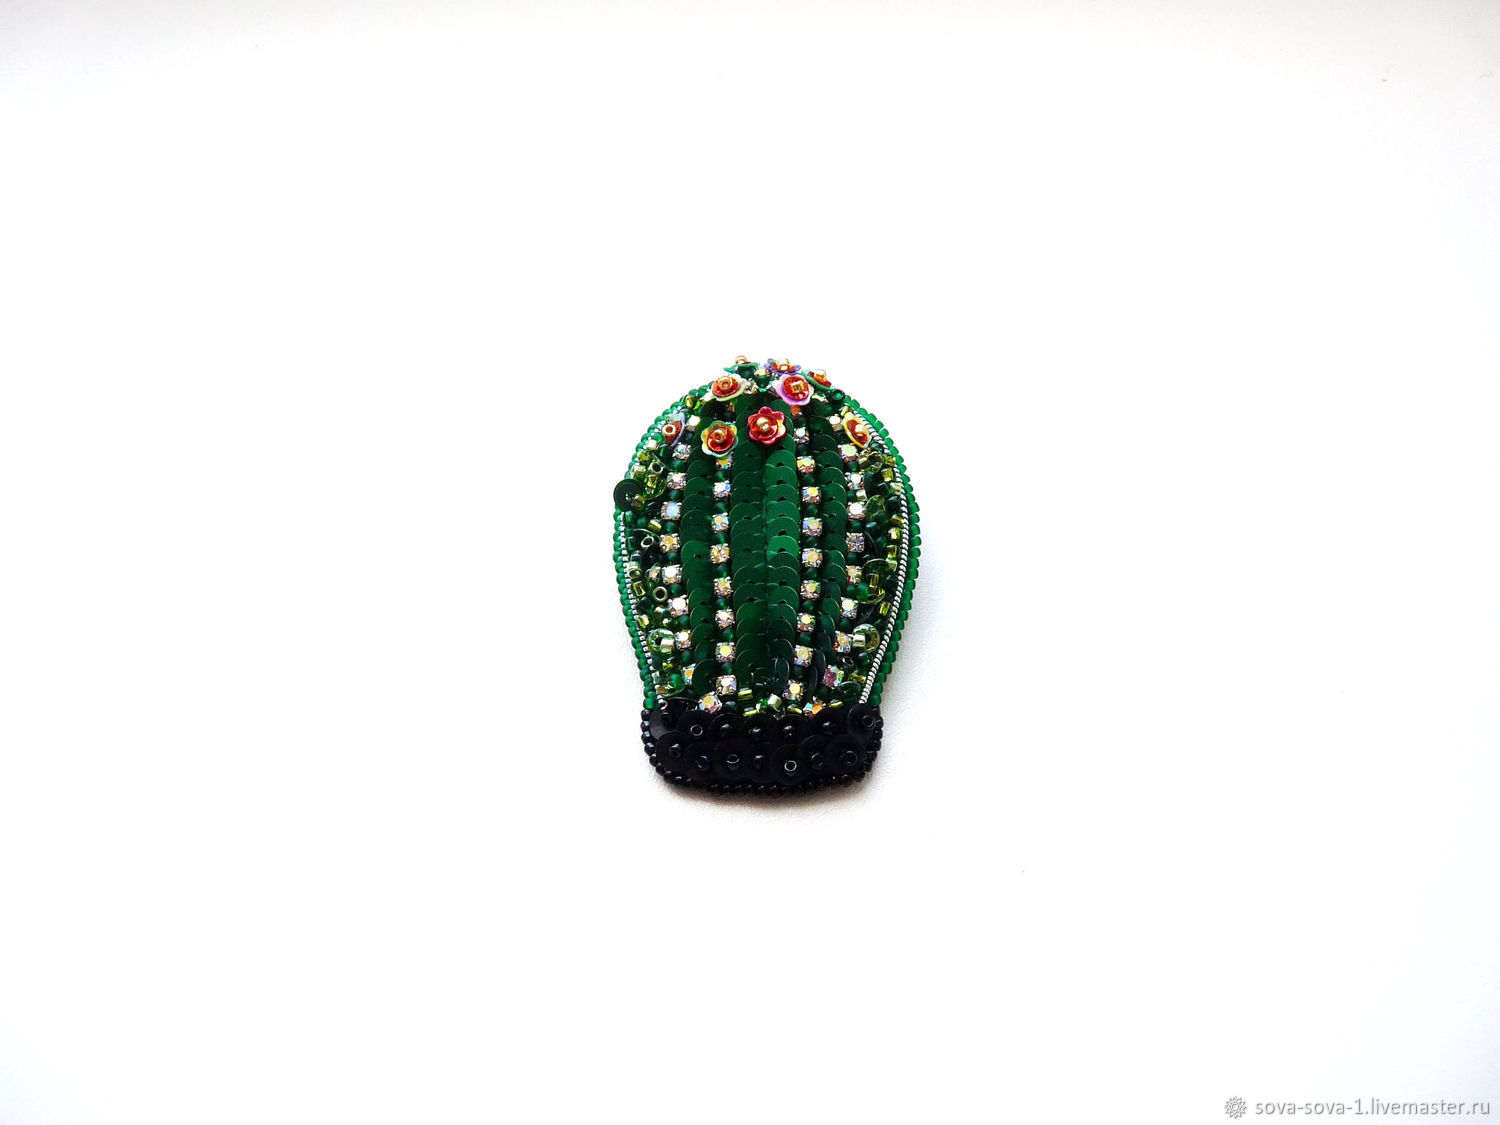 Brooch 'the Cactus kid', Brooches, Moscow,  Фото №1